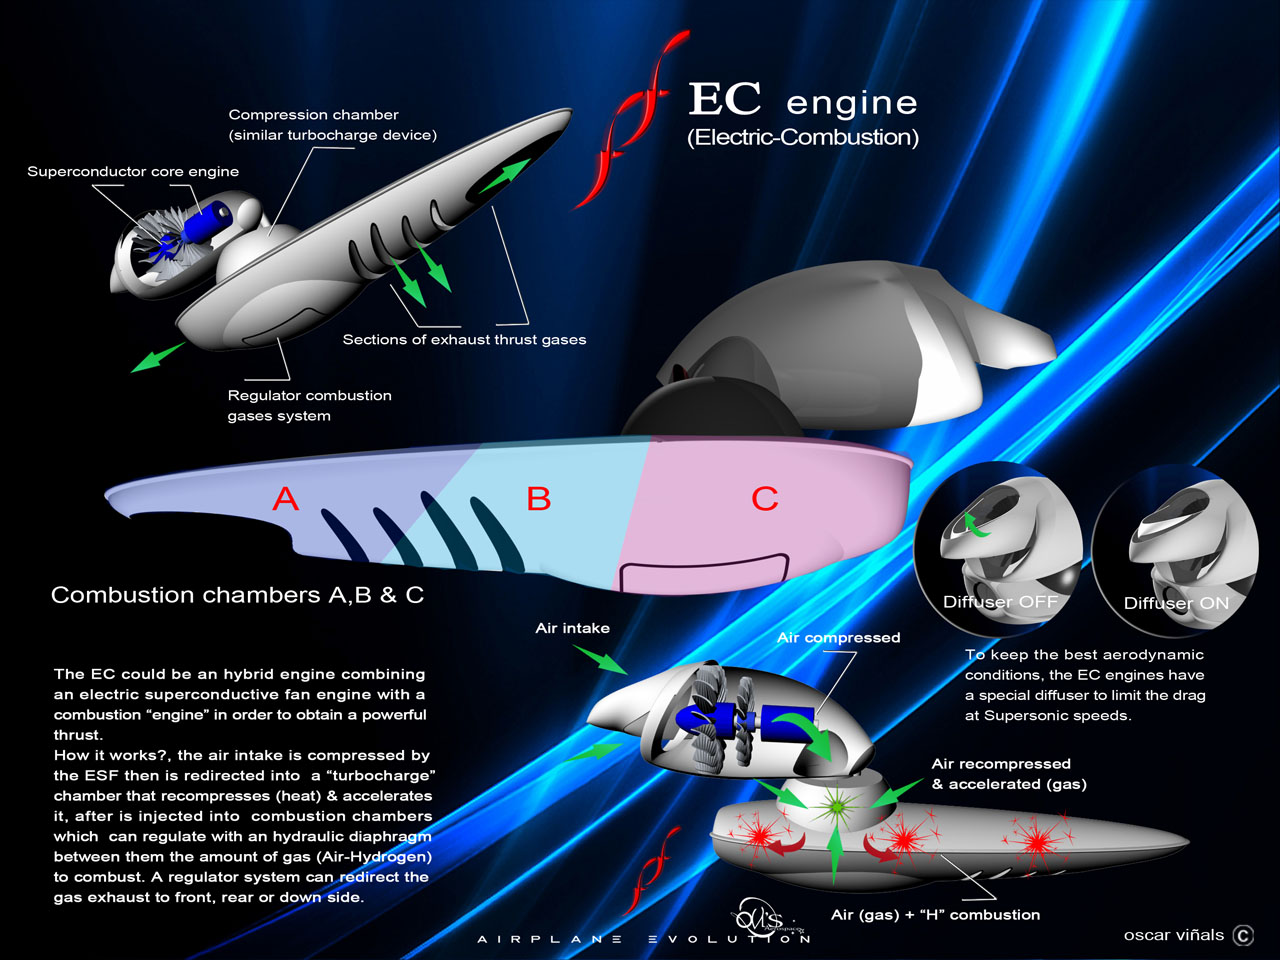 Flash Falcon Ff Futuristic Electric Supersonic Jet With Its Own Boeing 747 Engine Diagram By Oscar Vinals